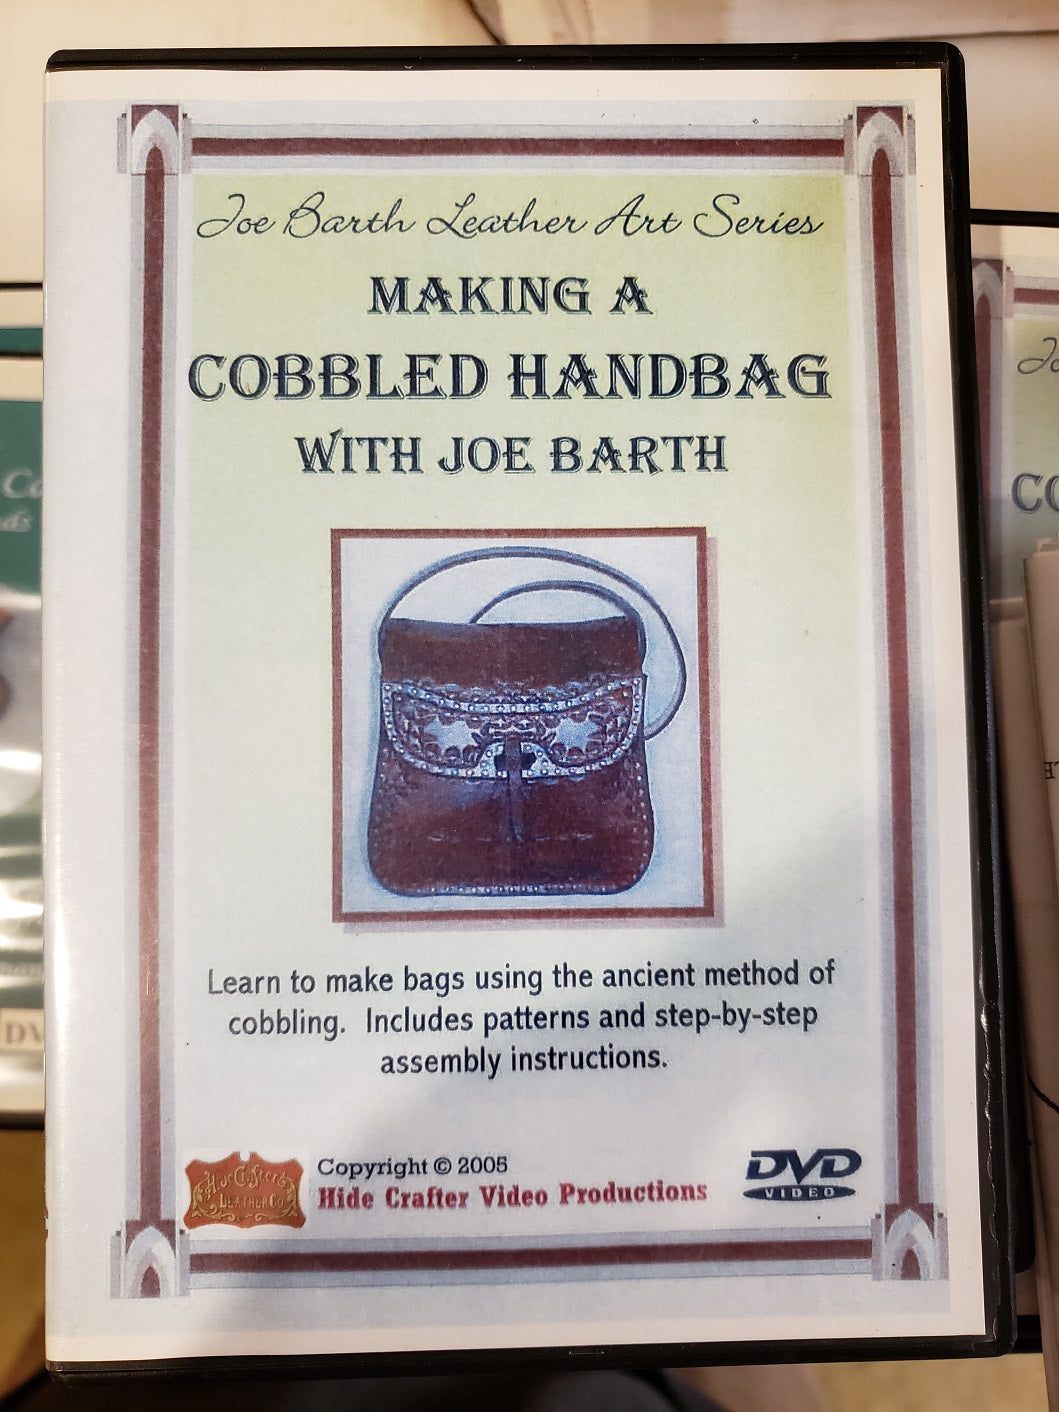 Making a Cobbled Handbag with Joe Barth